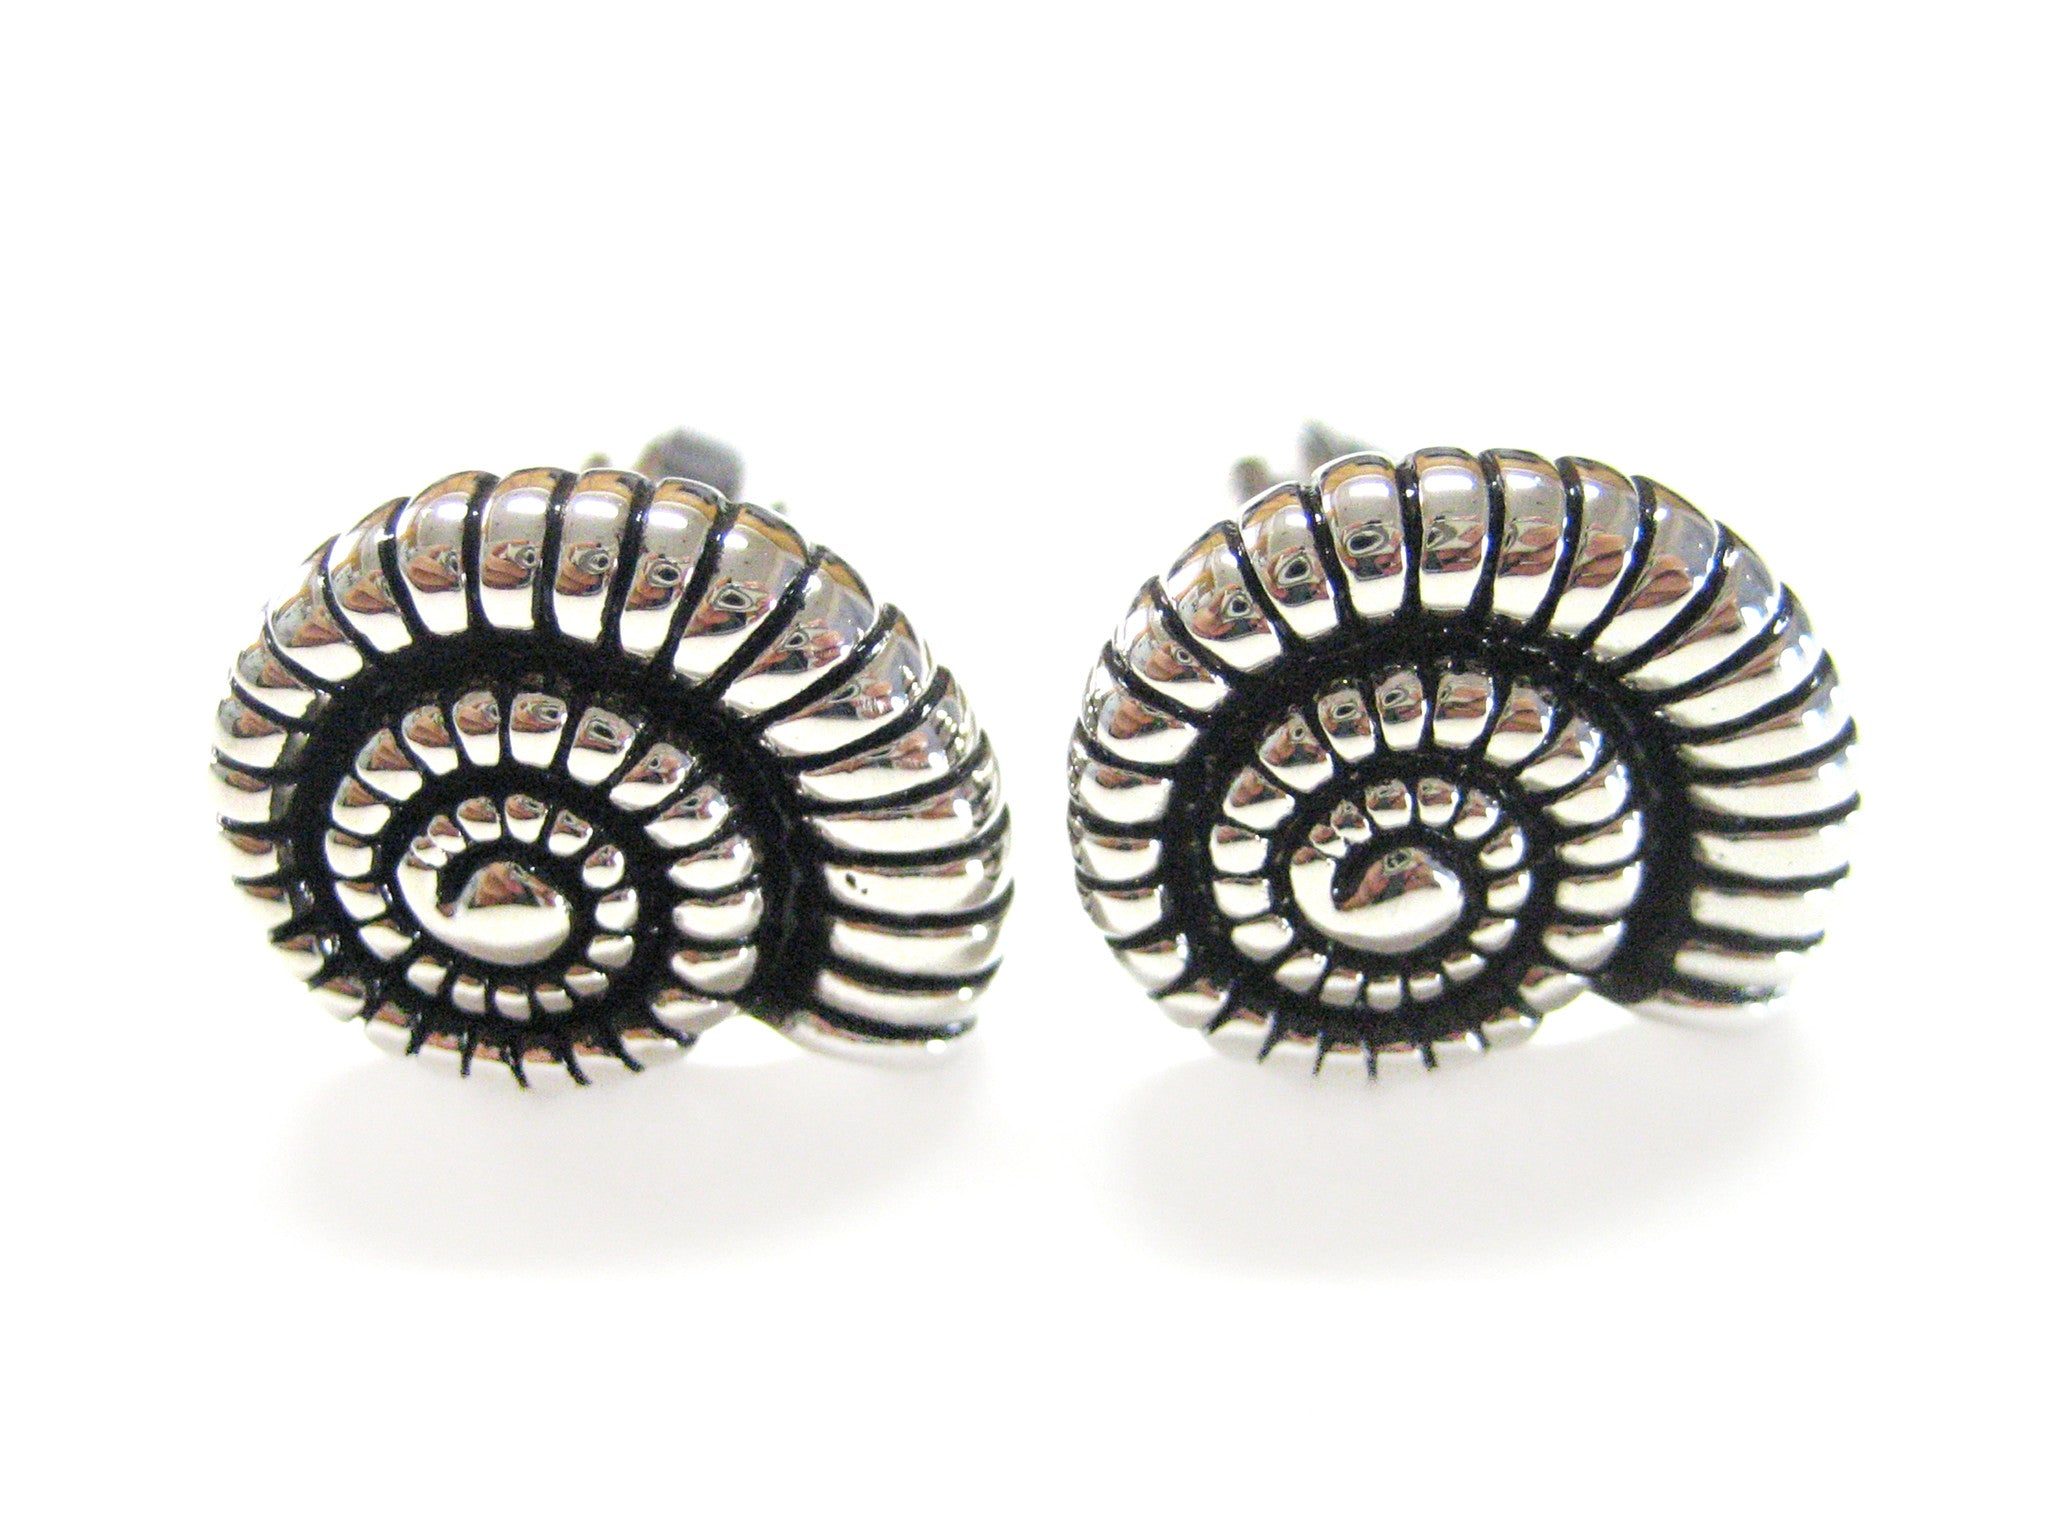 Metal Ammonite Cufflinks